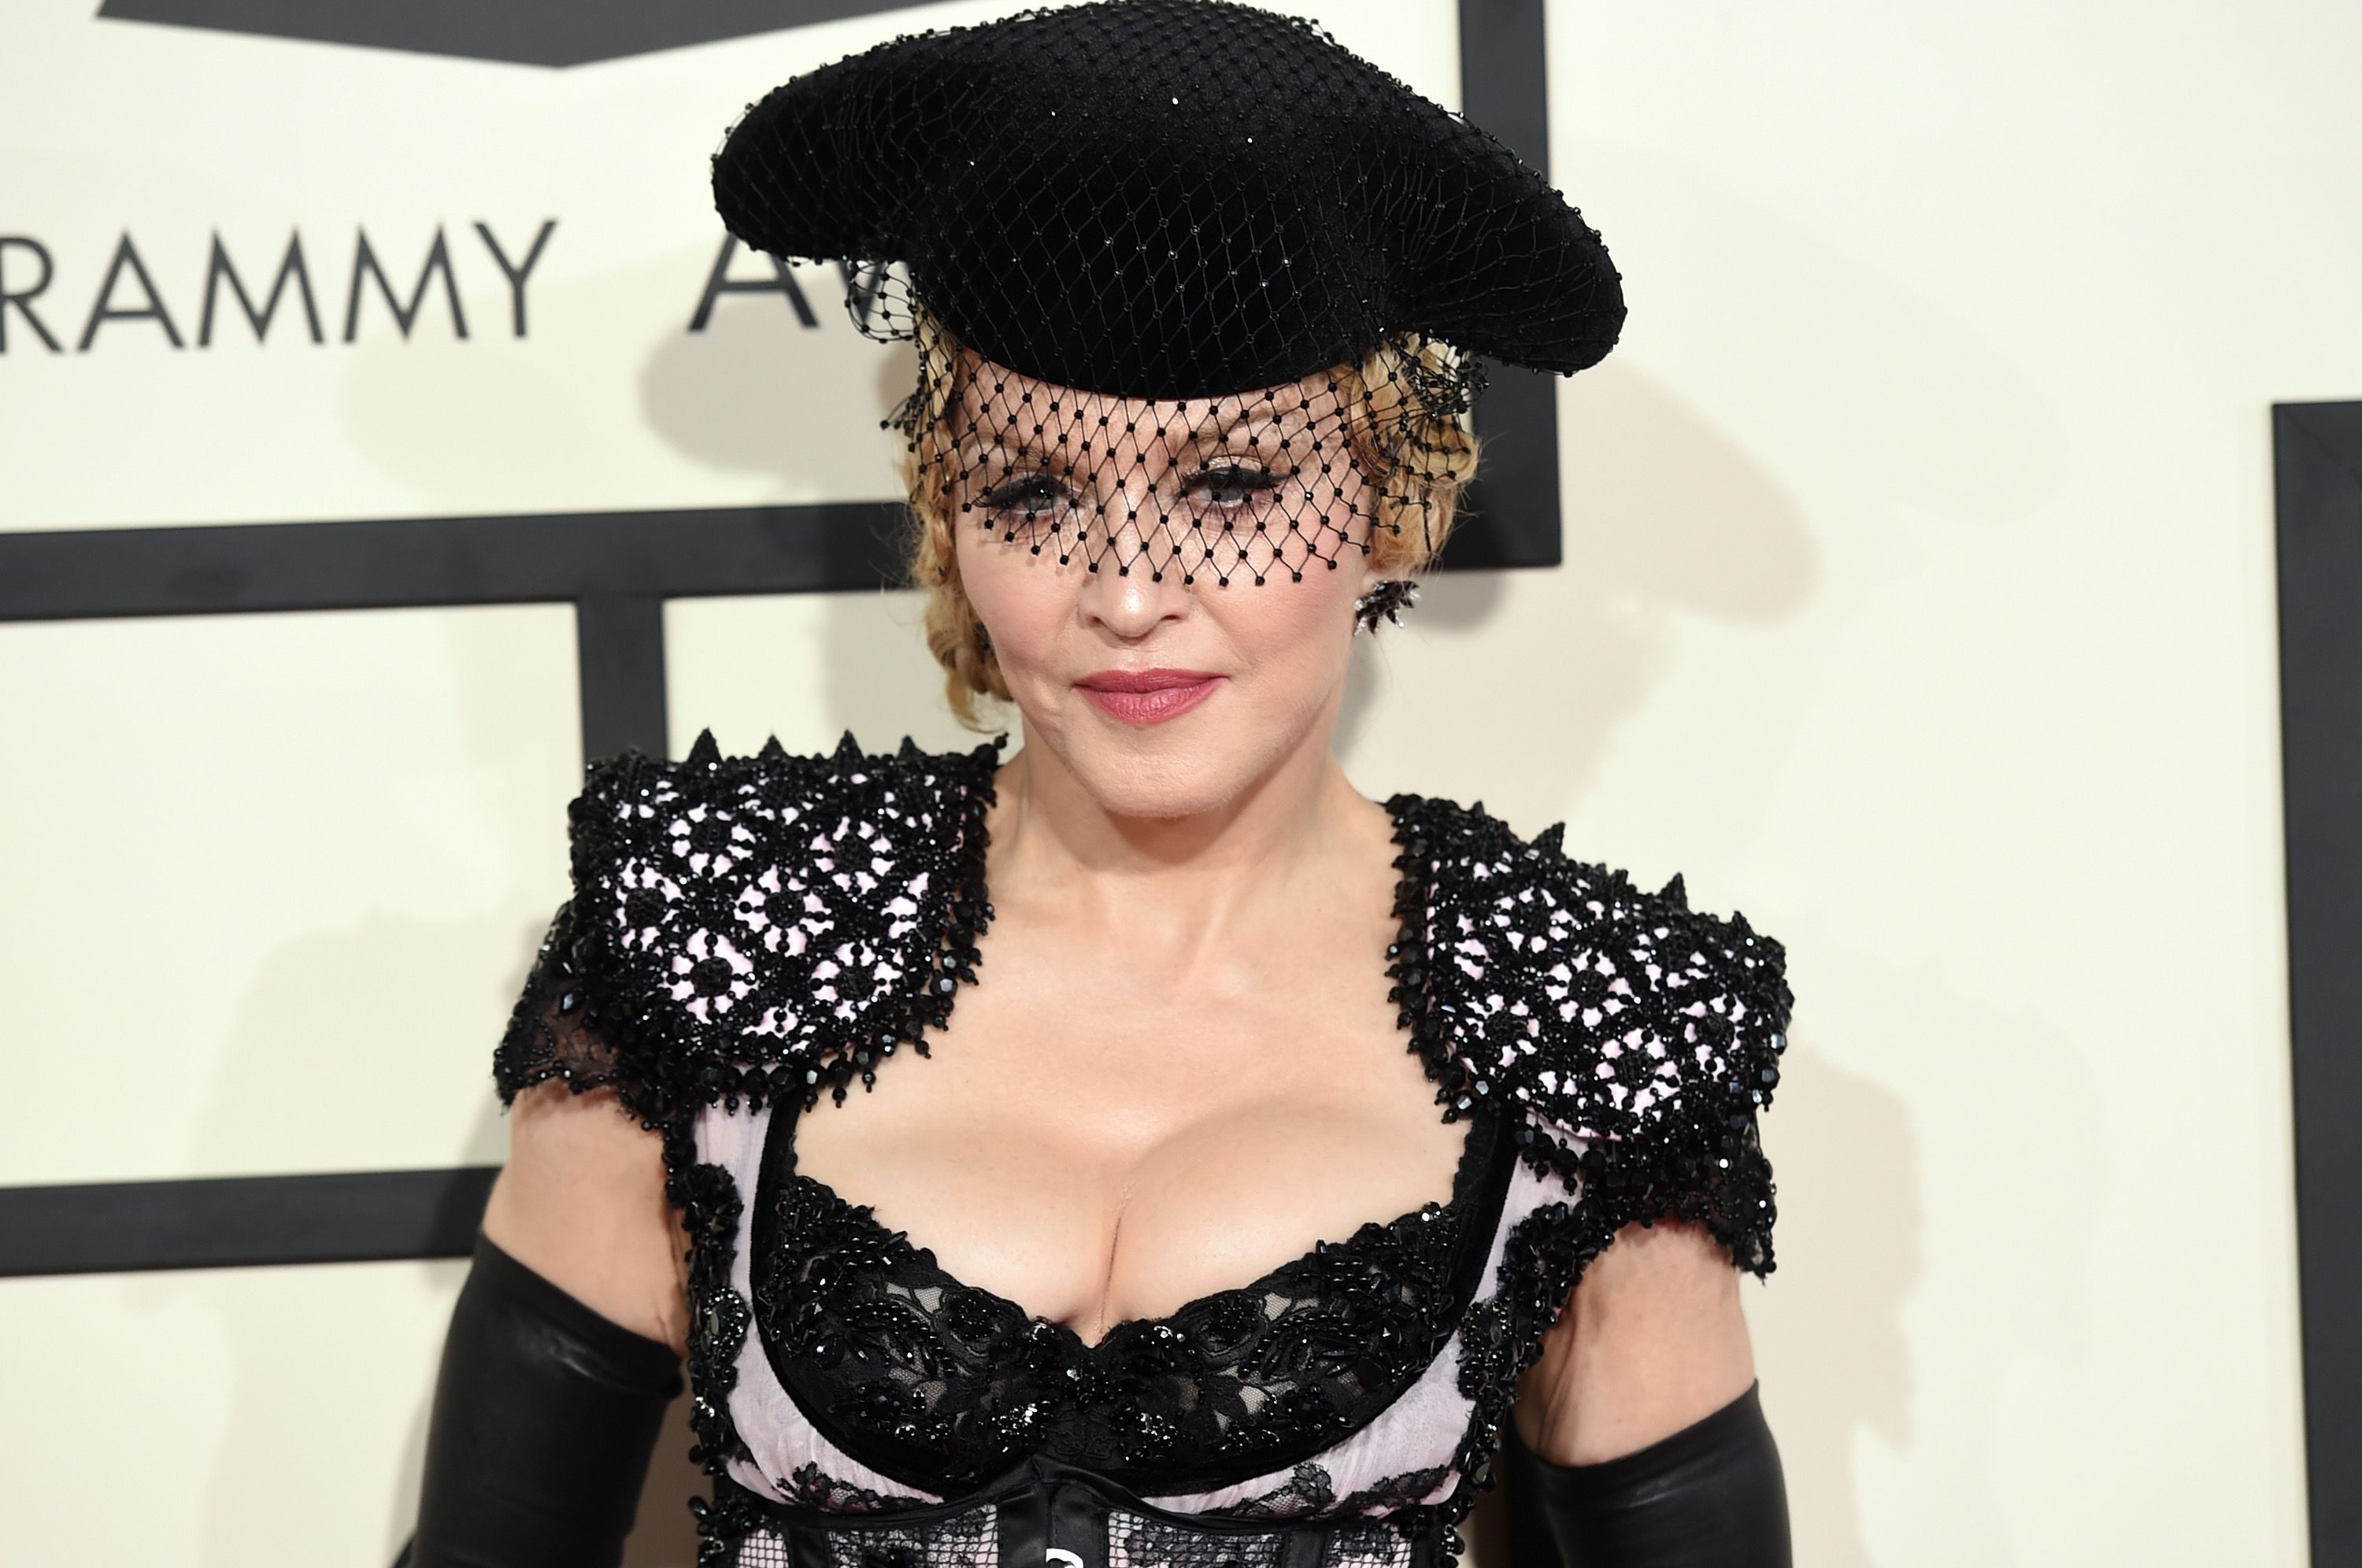 Madonna at the 57th Annual Grammy Awards in February 2015 in Los Angeles, California | Source: Getty Images